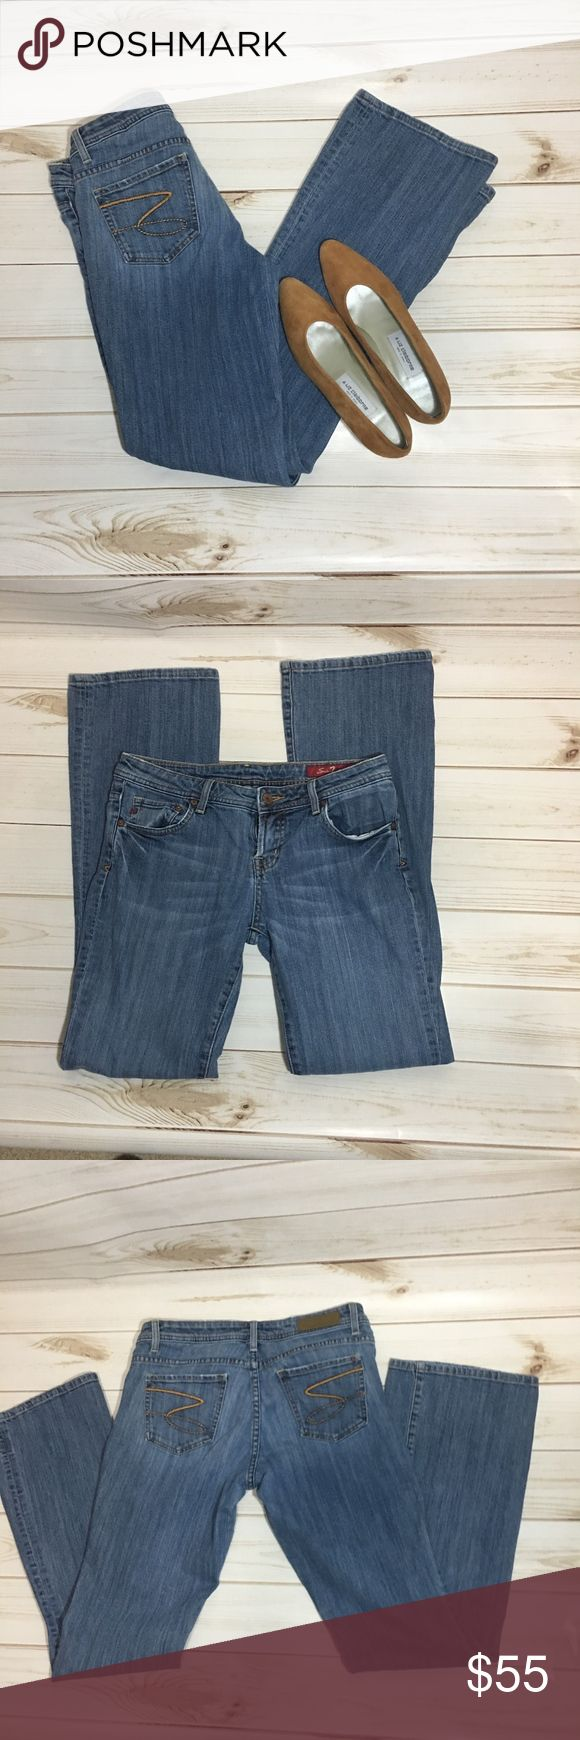 "Seven7 Jeans Size 31 Light Wash Low rise Seven7 Jeans  Size 31 Light Wash These jeans are in great shape Measurements: Waist measures 30.5"" Hips 36"" Front Rise 8"" Back Rise 13"" Inseam 32.5"" Outseam 39.75"" Leg opening 17.5"" Seven7 Jeans Flare & Wide Leg"